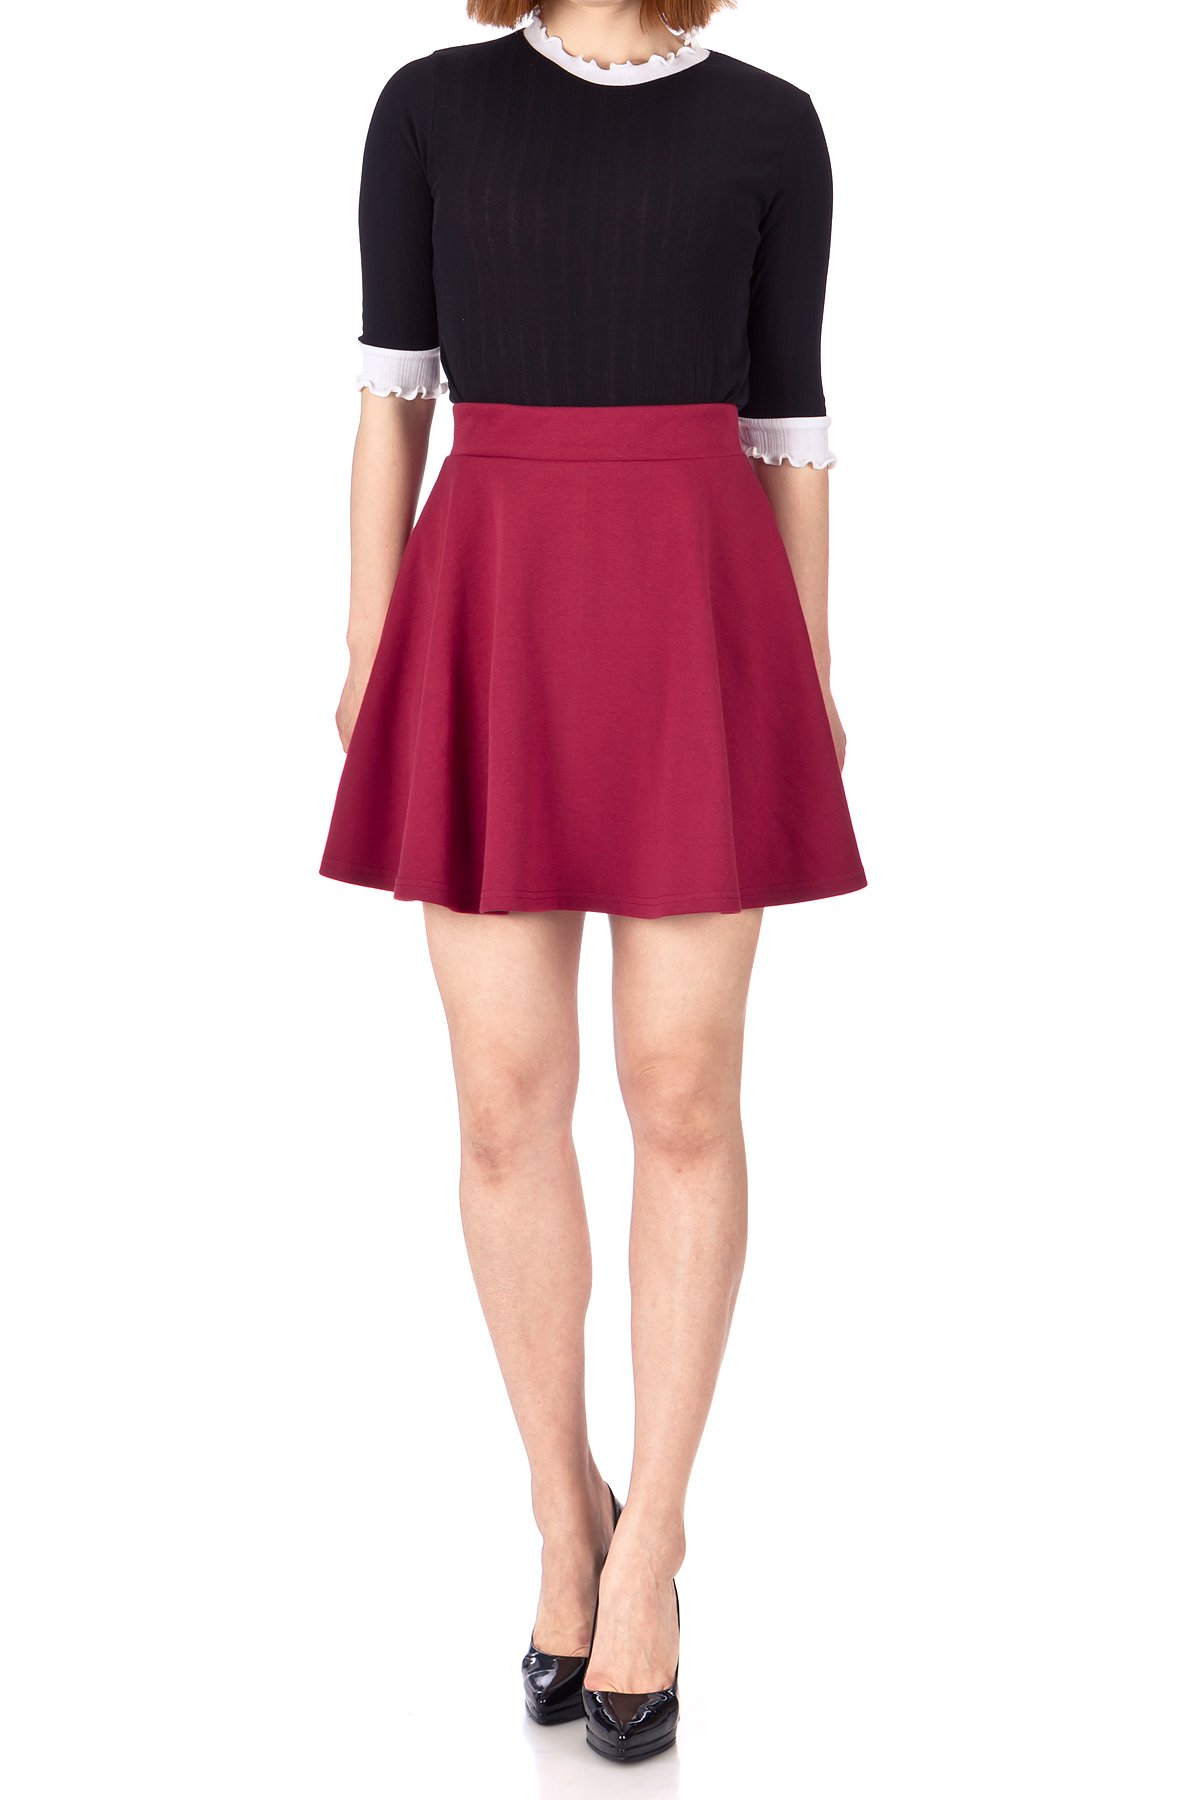 Basic Solid Stretchy Cotton High Waist line Flared Skater Mini Skirt Burgundy 02